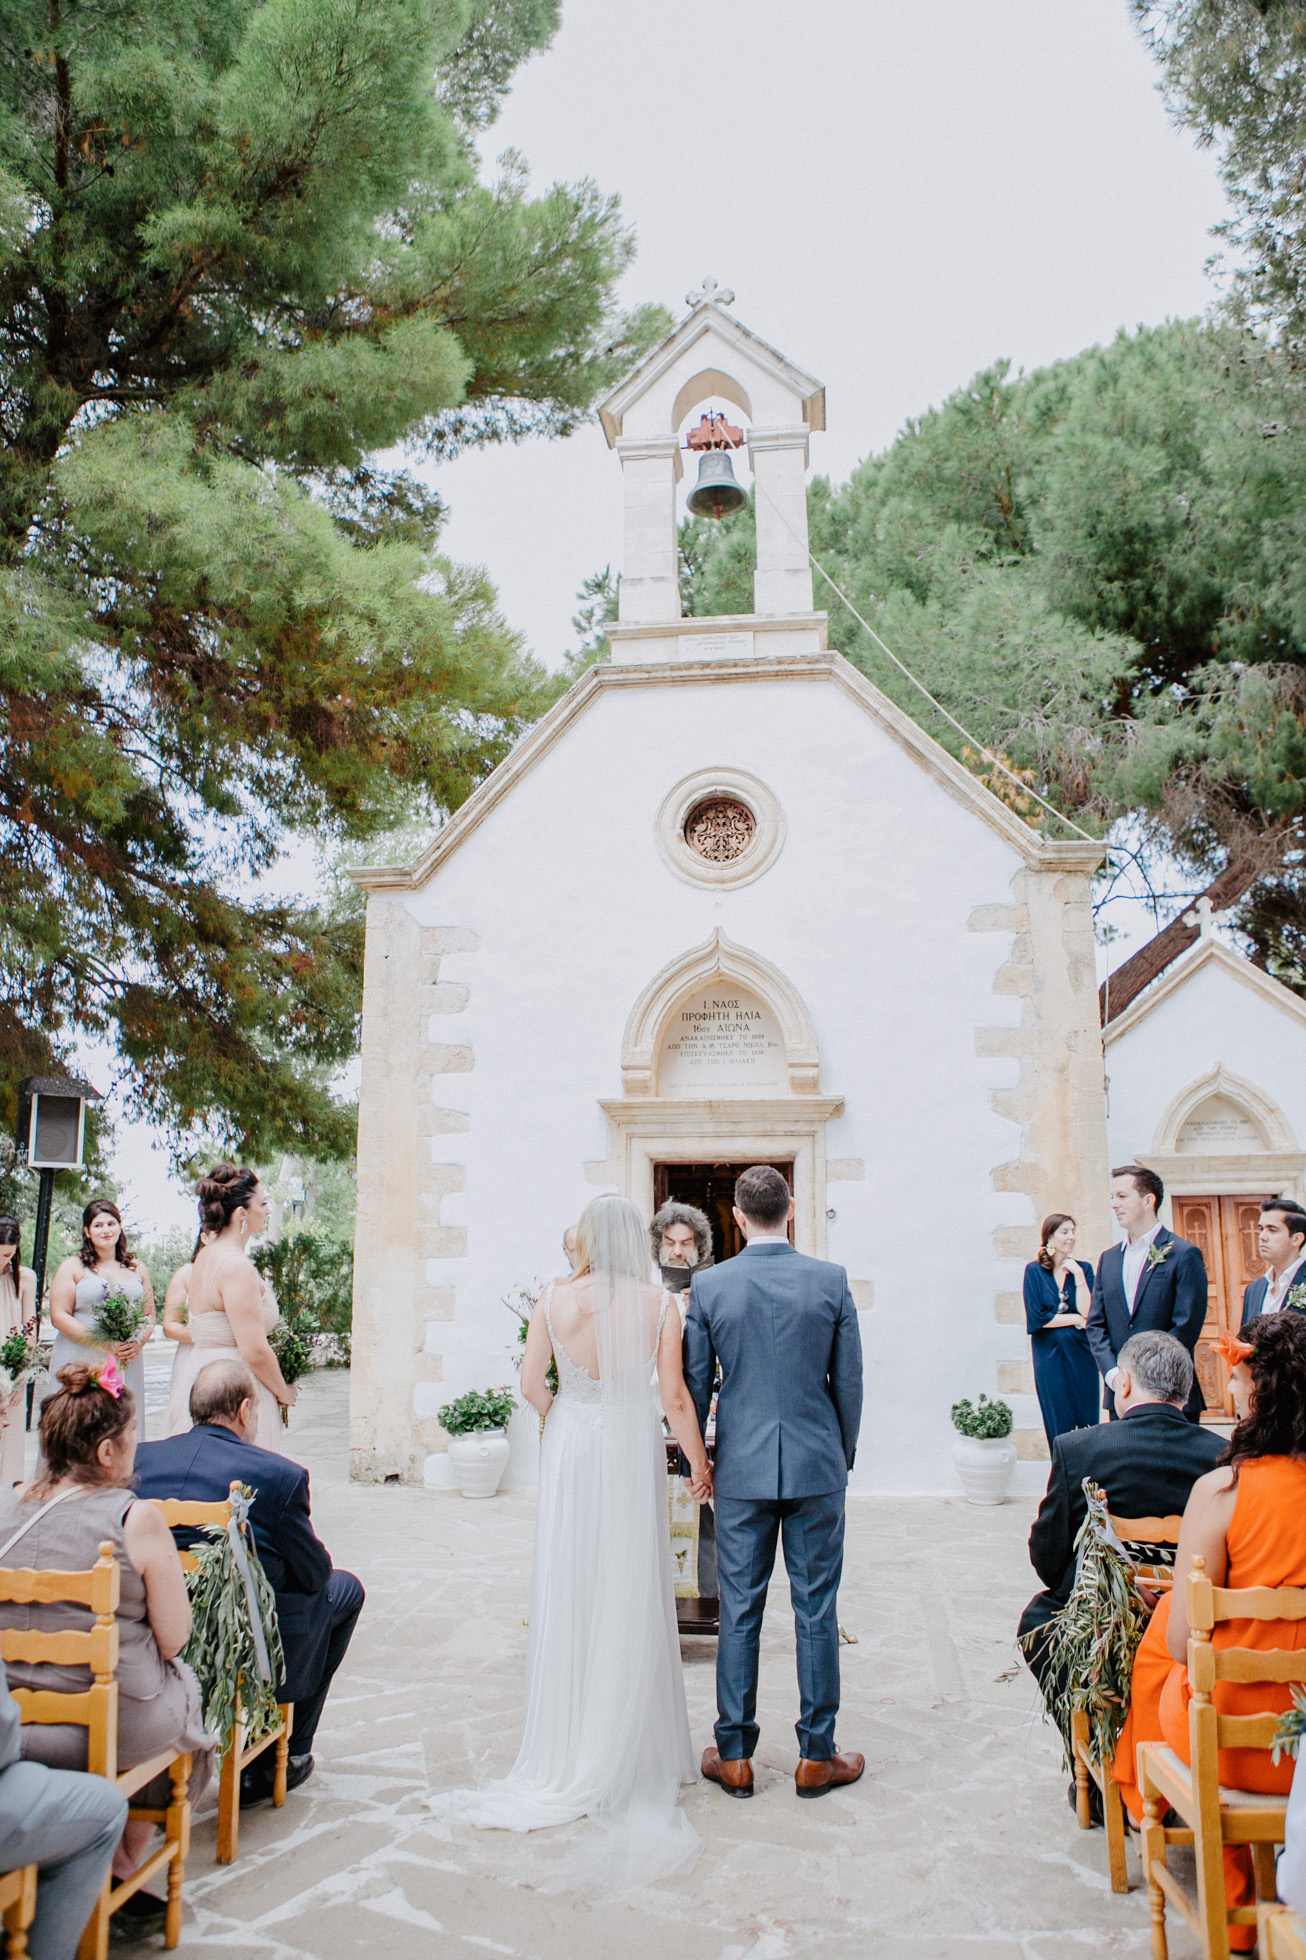 Elegant couple on their Greek orthodox destination wedding ceremony in Profitis Ilias, Chania & Crete.